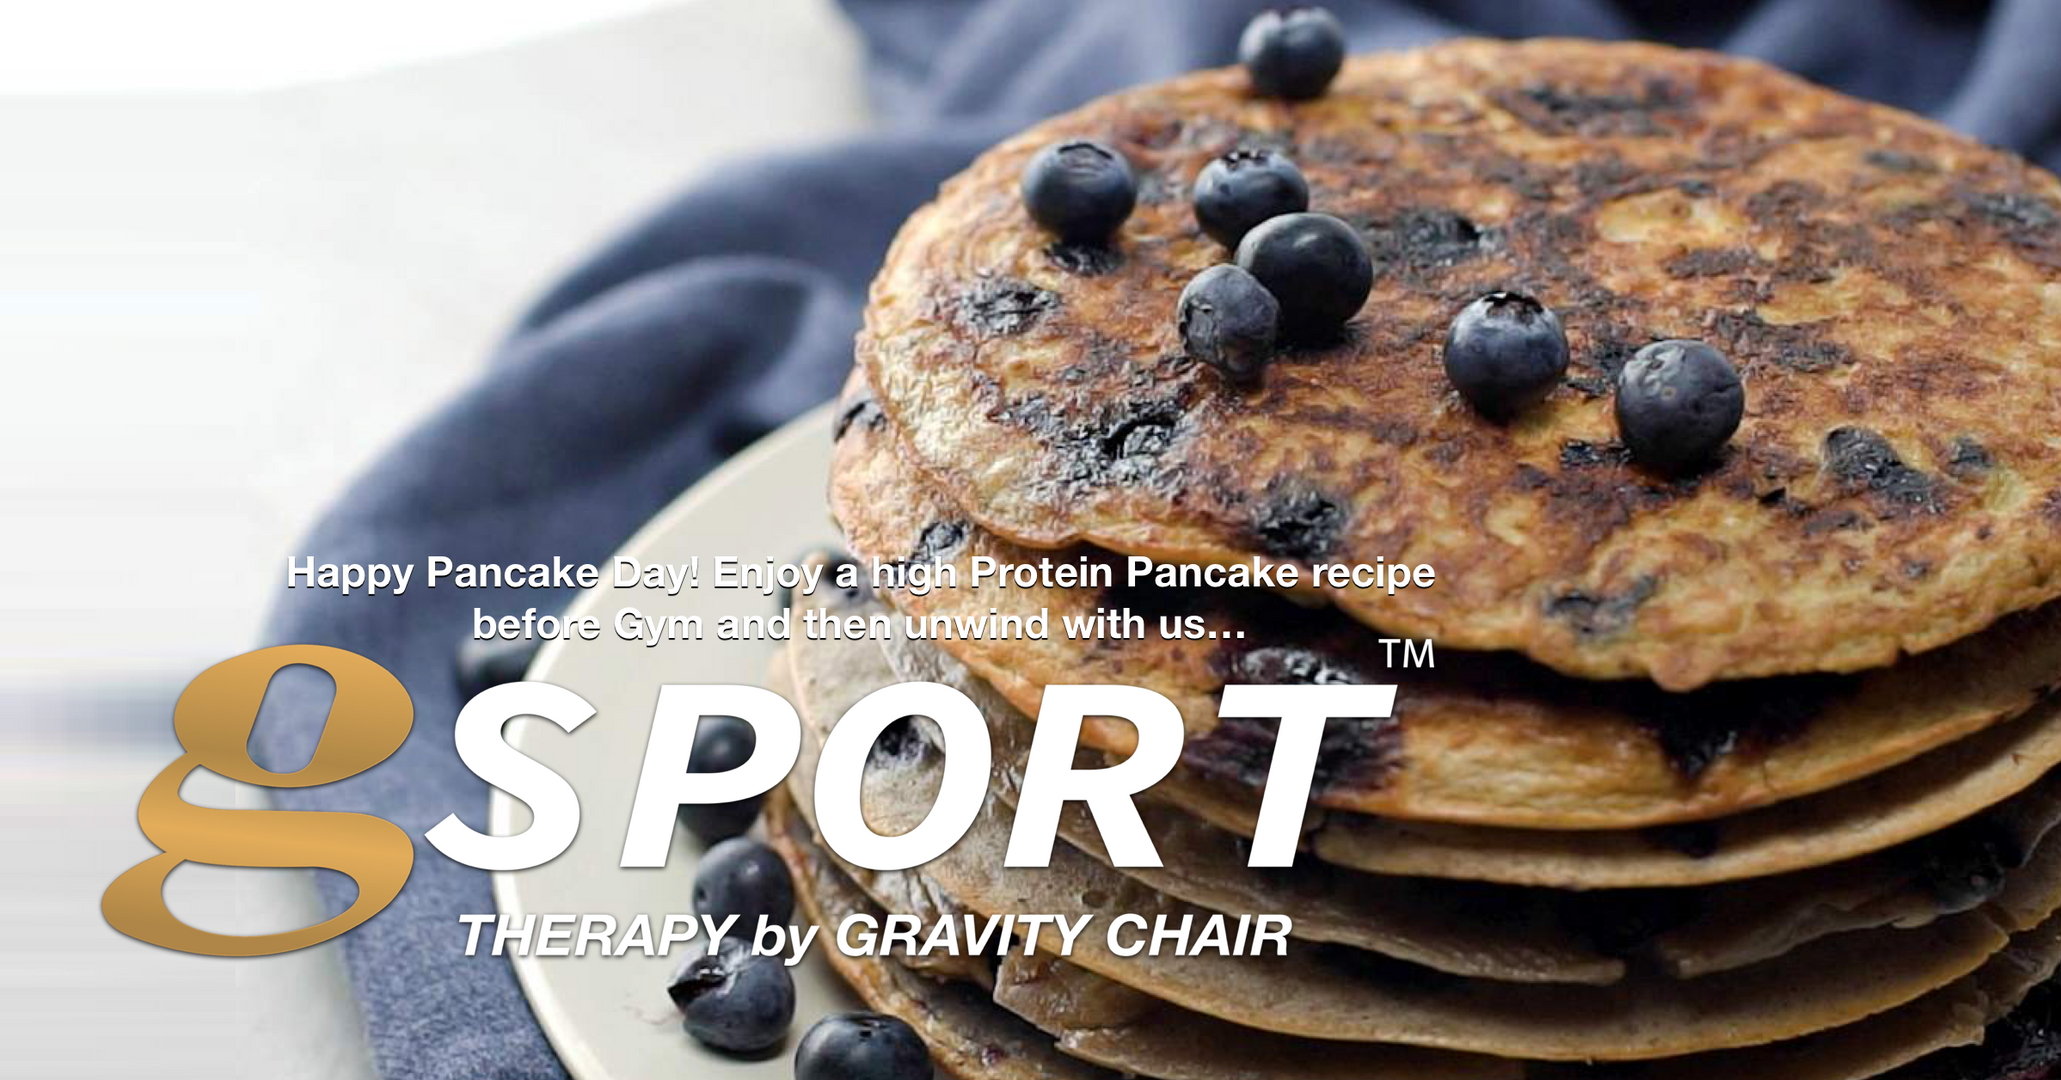 GSPORT_PANCAKE DAY.png